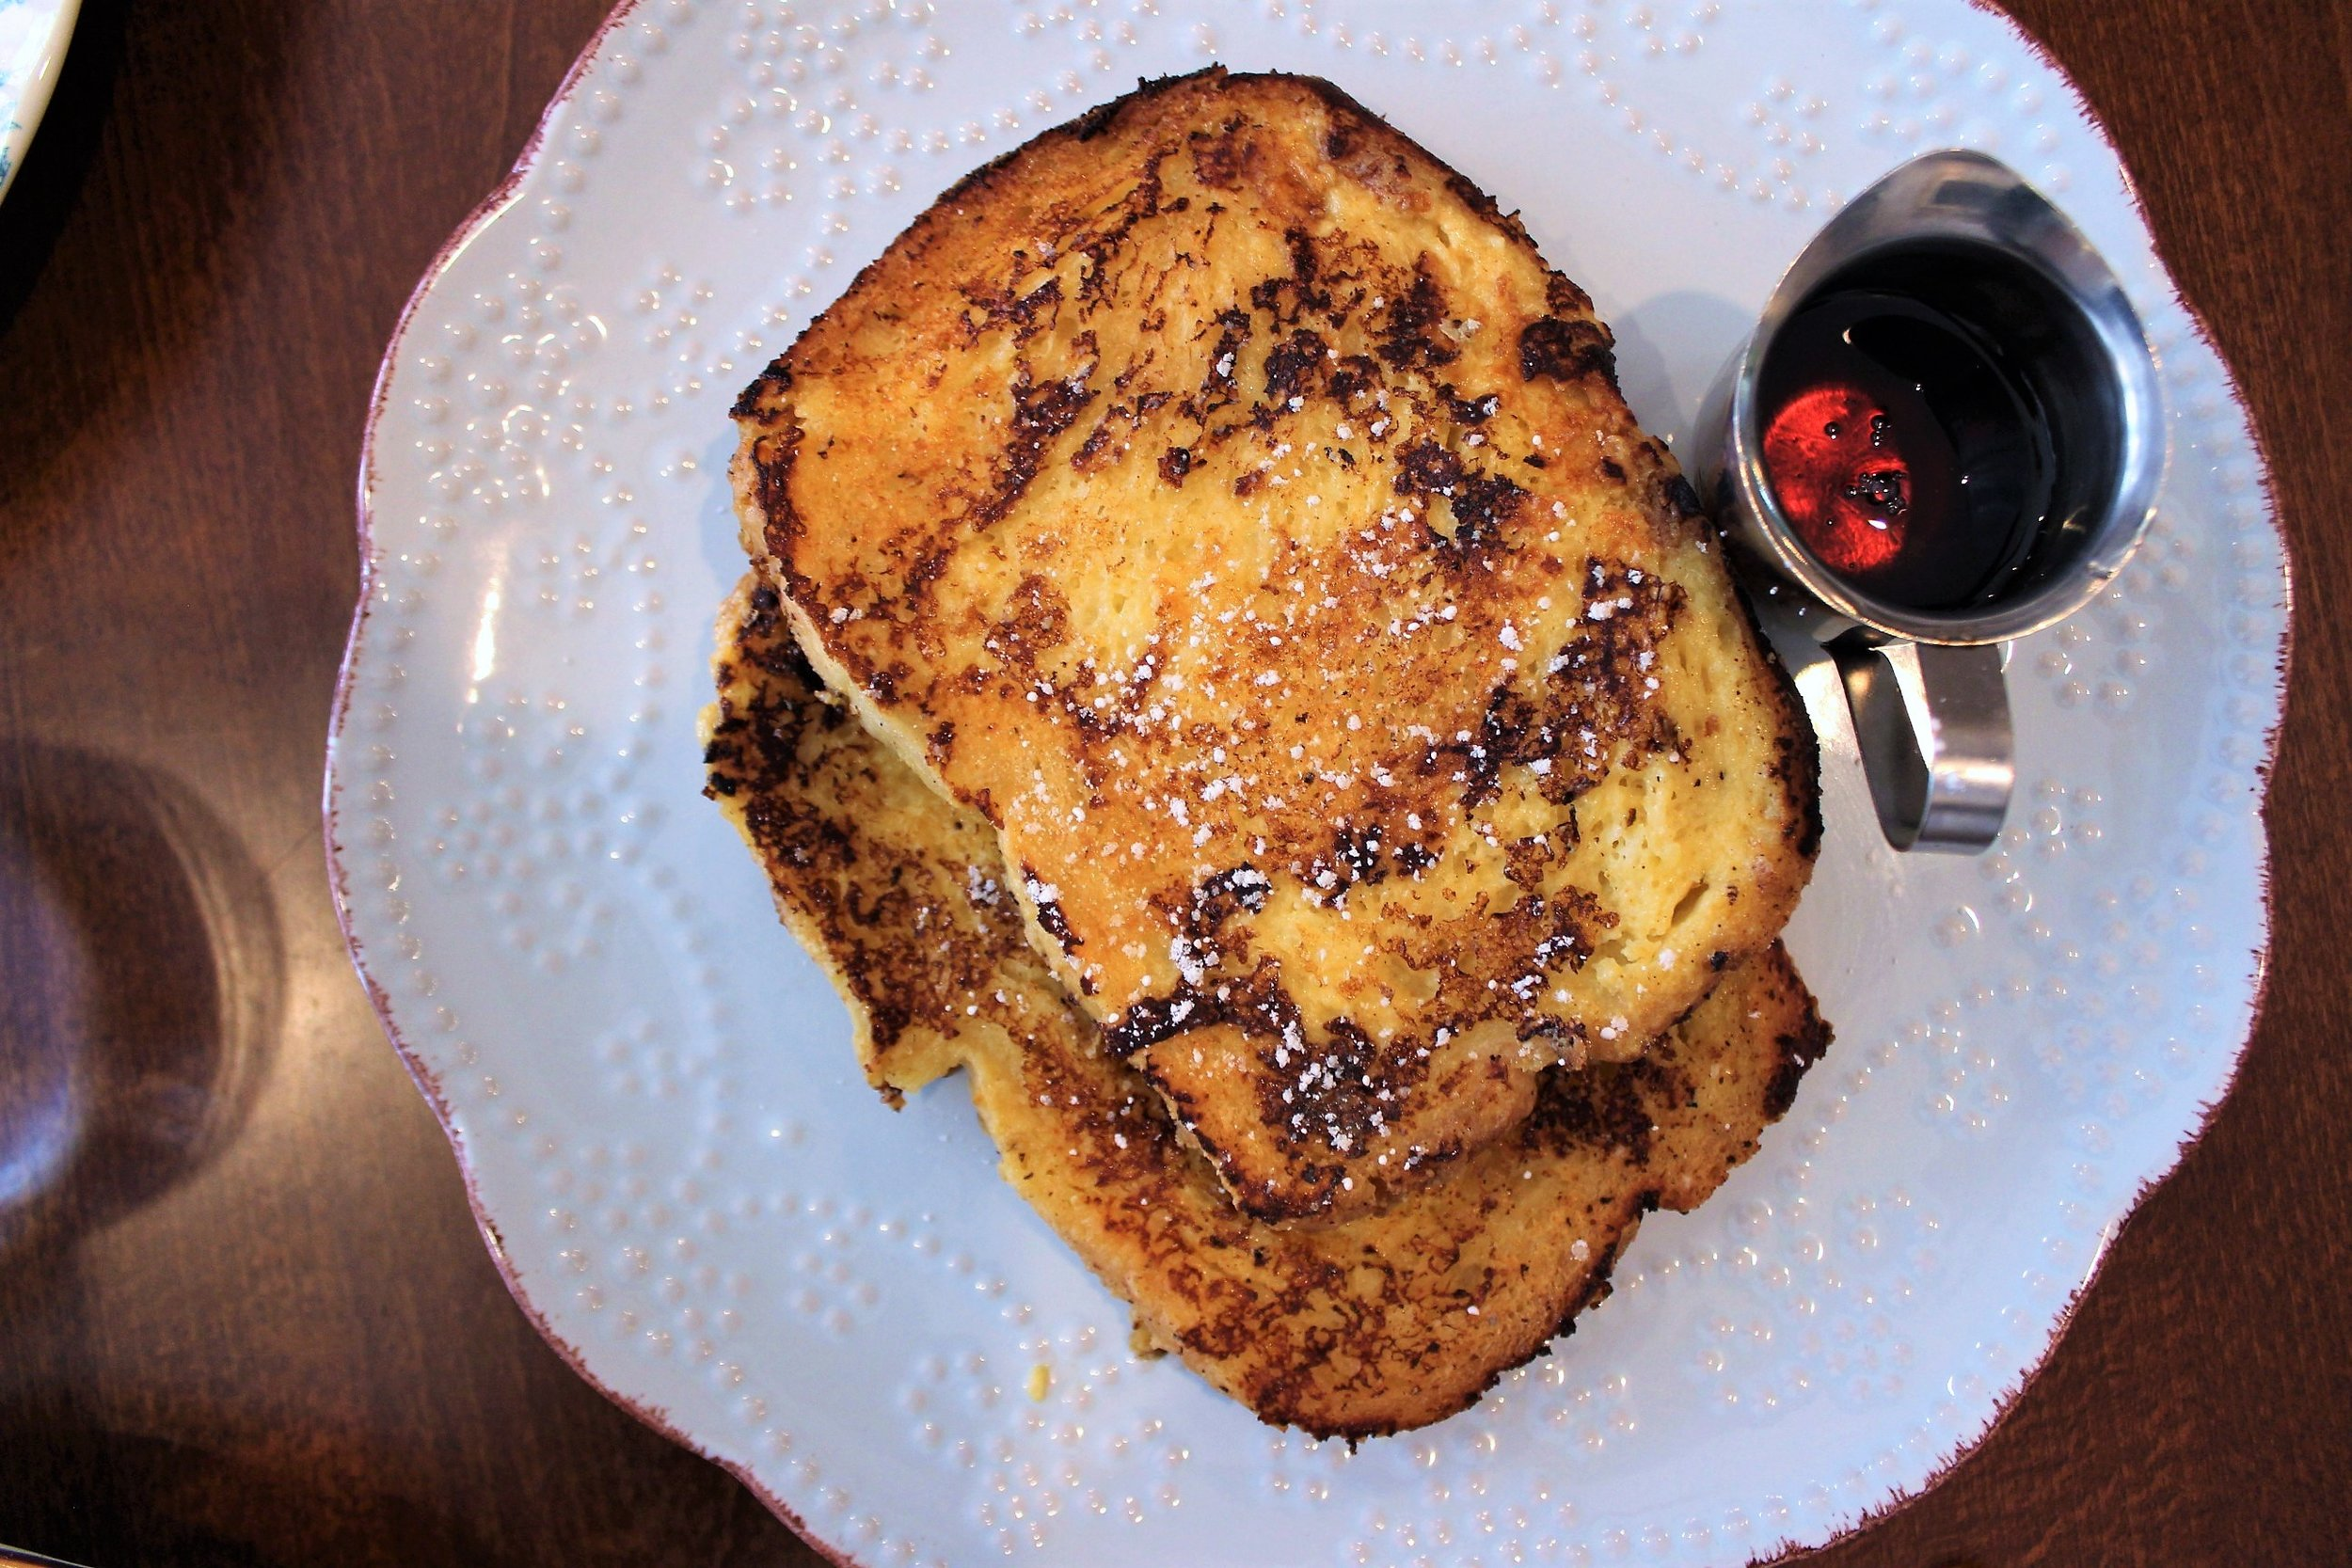 Mom's French Toast Soaked in Condensed Milk Custard